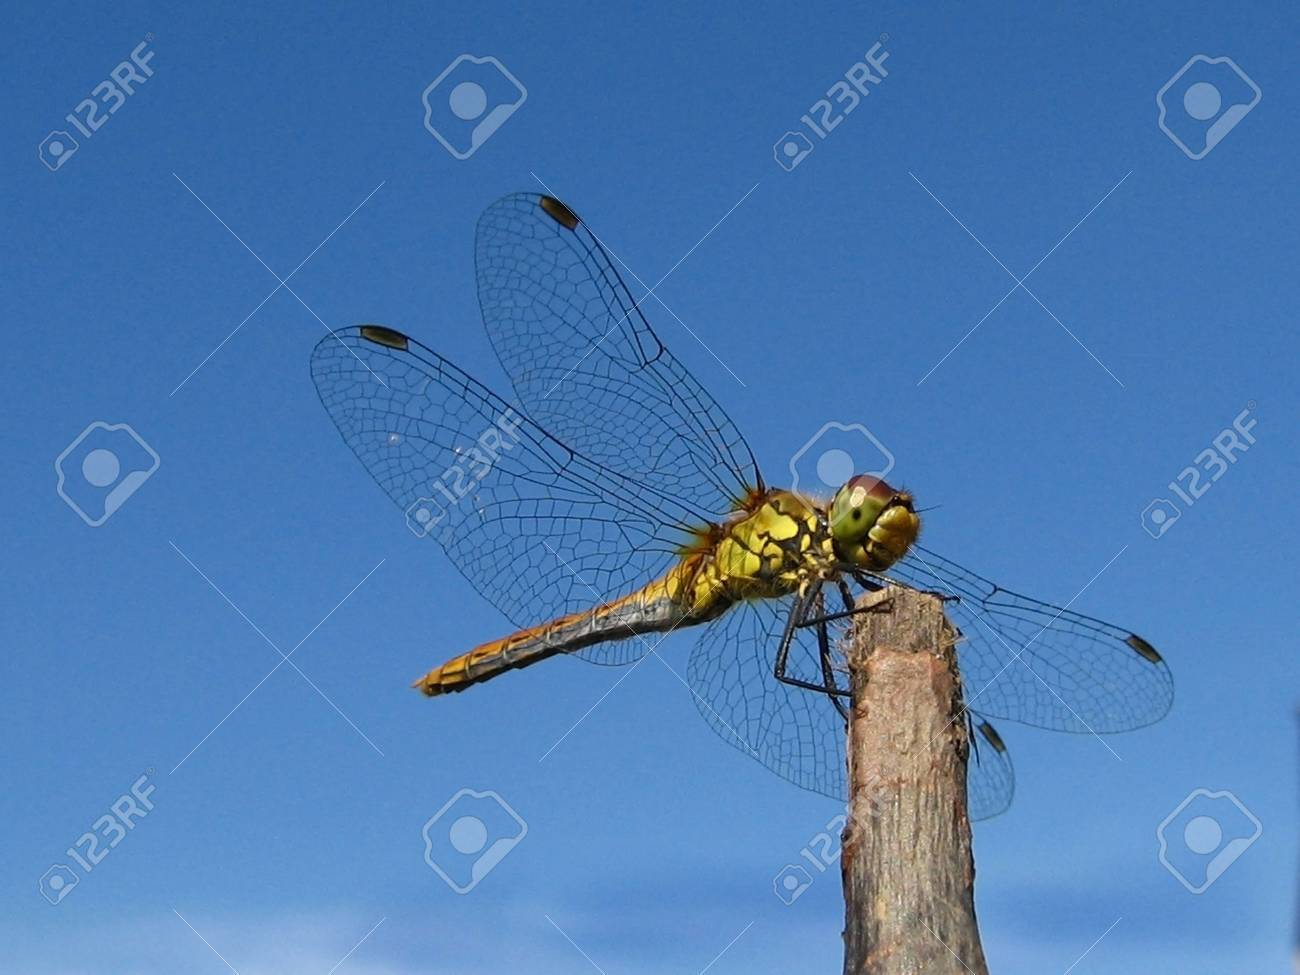 dragonfly, outdoors, wing, insect, tranquil - 2057651